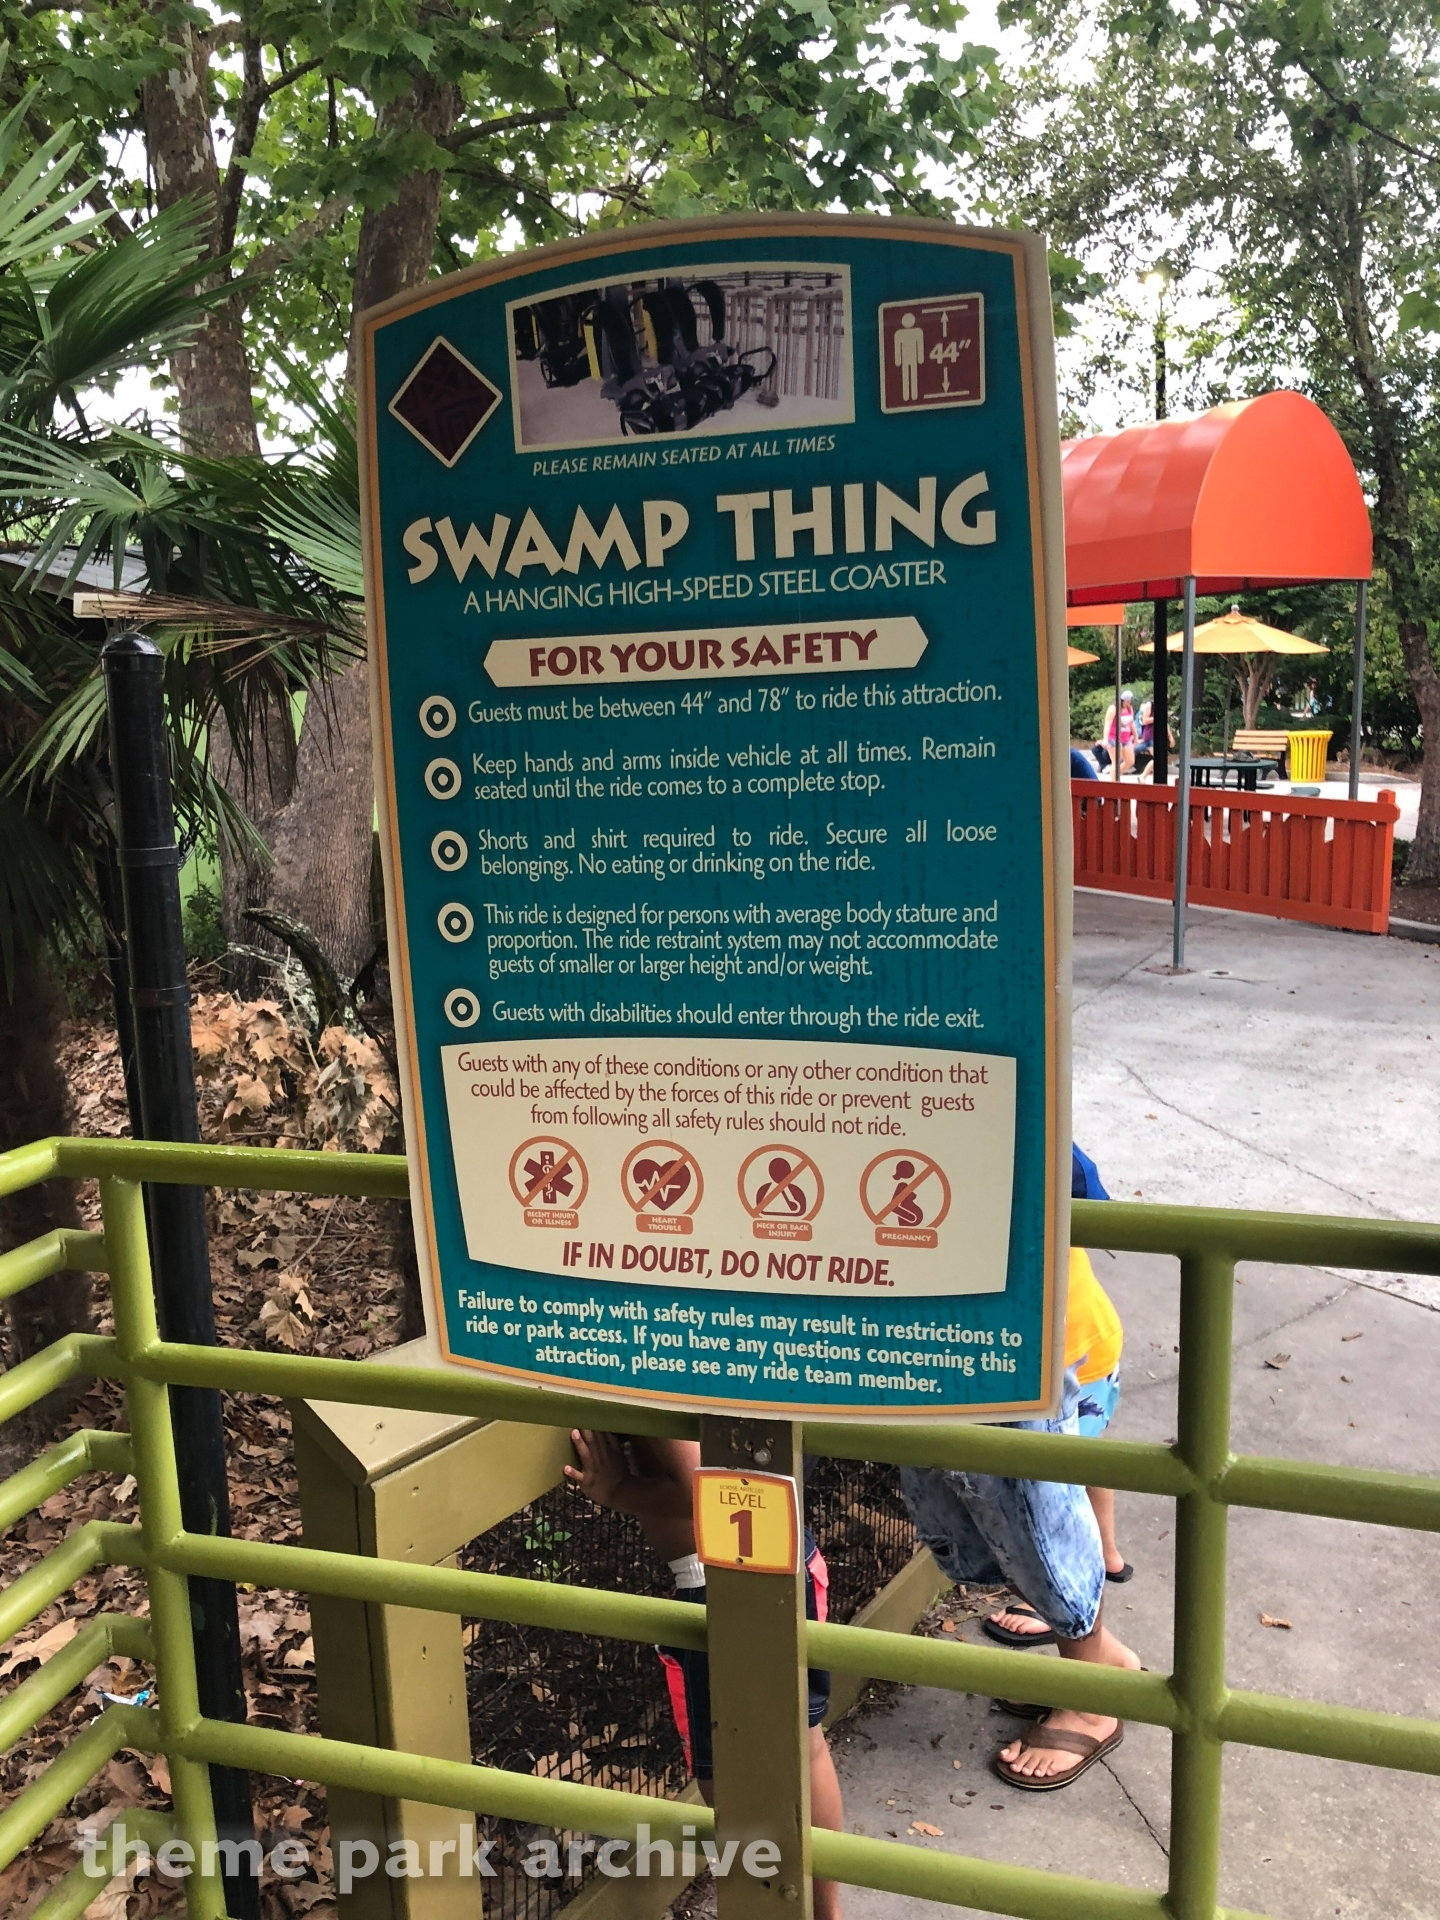 Swamp Thing at Wild Adventures